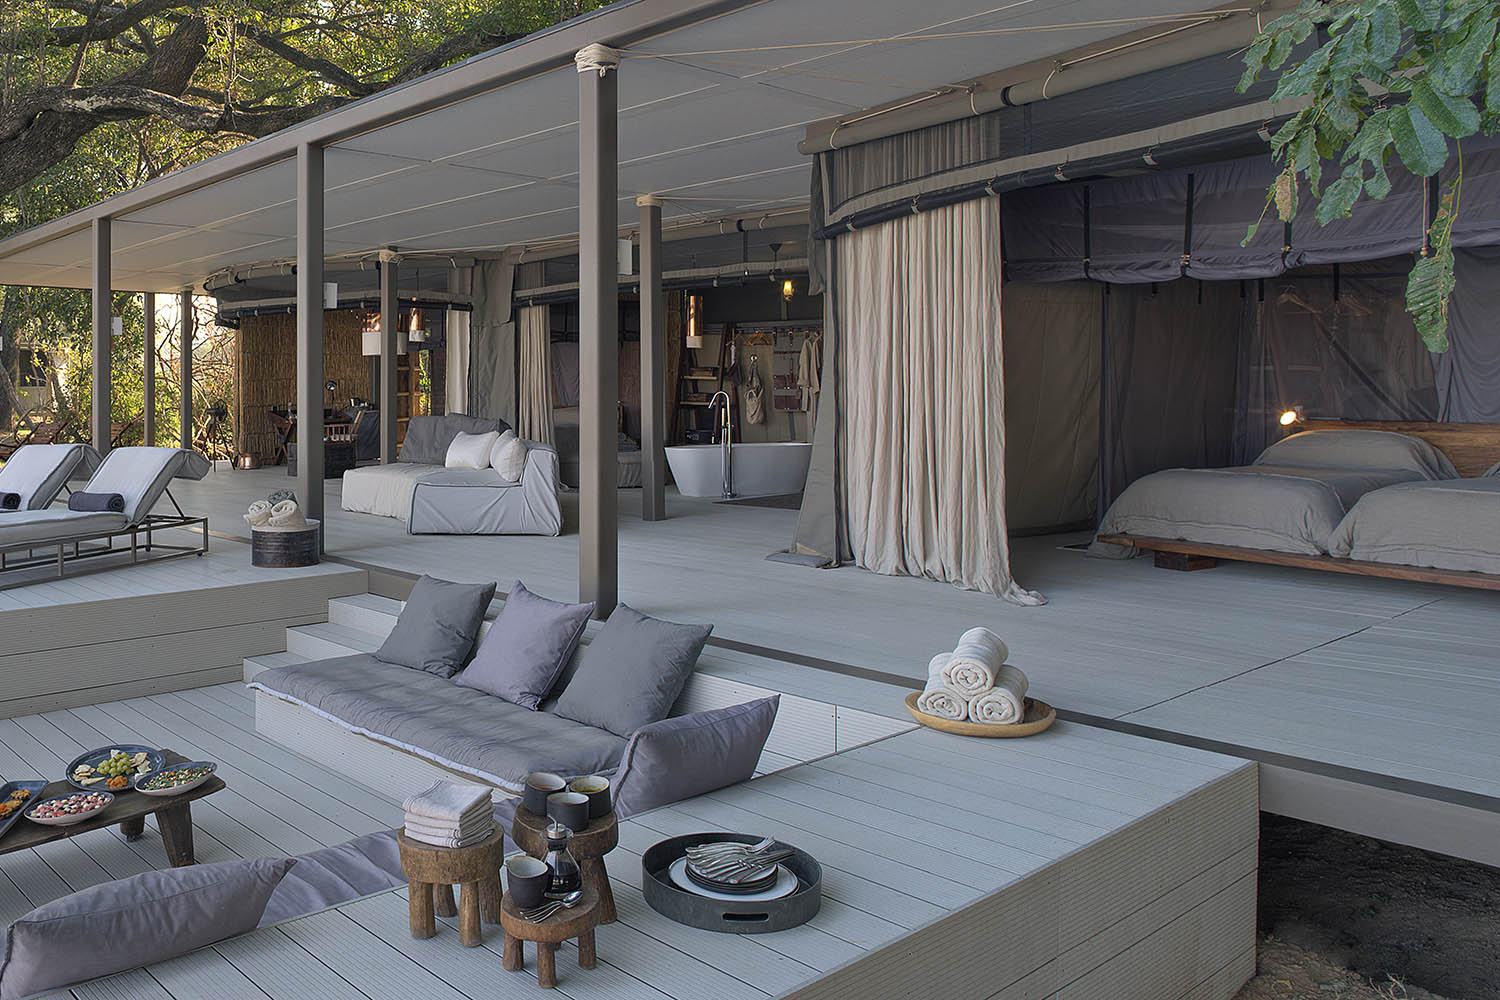 chinzombo-glamourous-lodge-zambia-in-style-tours-safari-packages-lodges-exploring-south-luangwa-national-park-villa-room